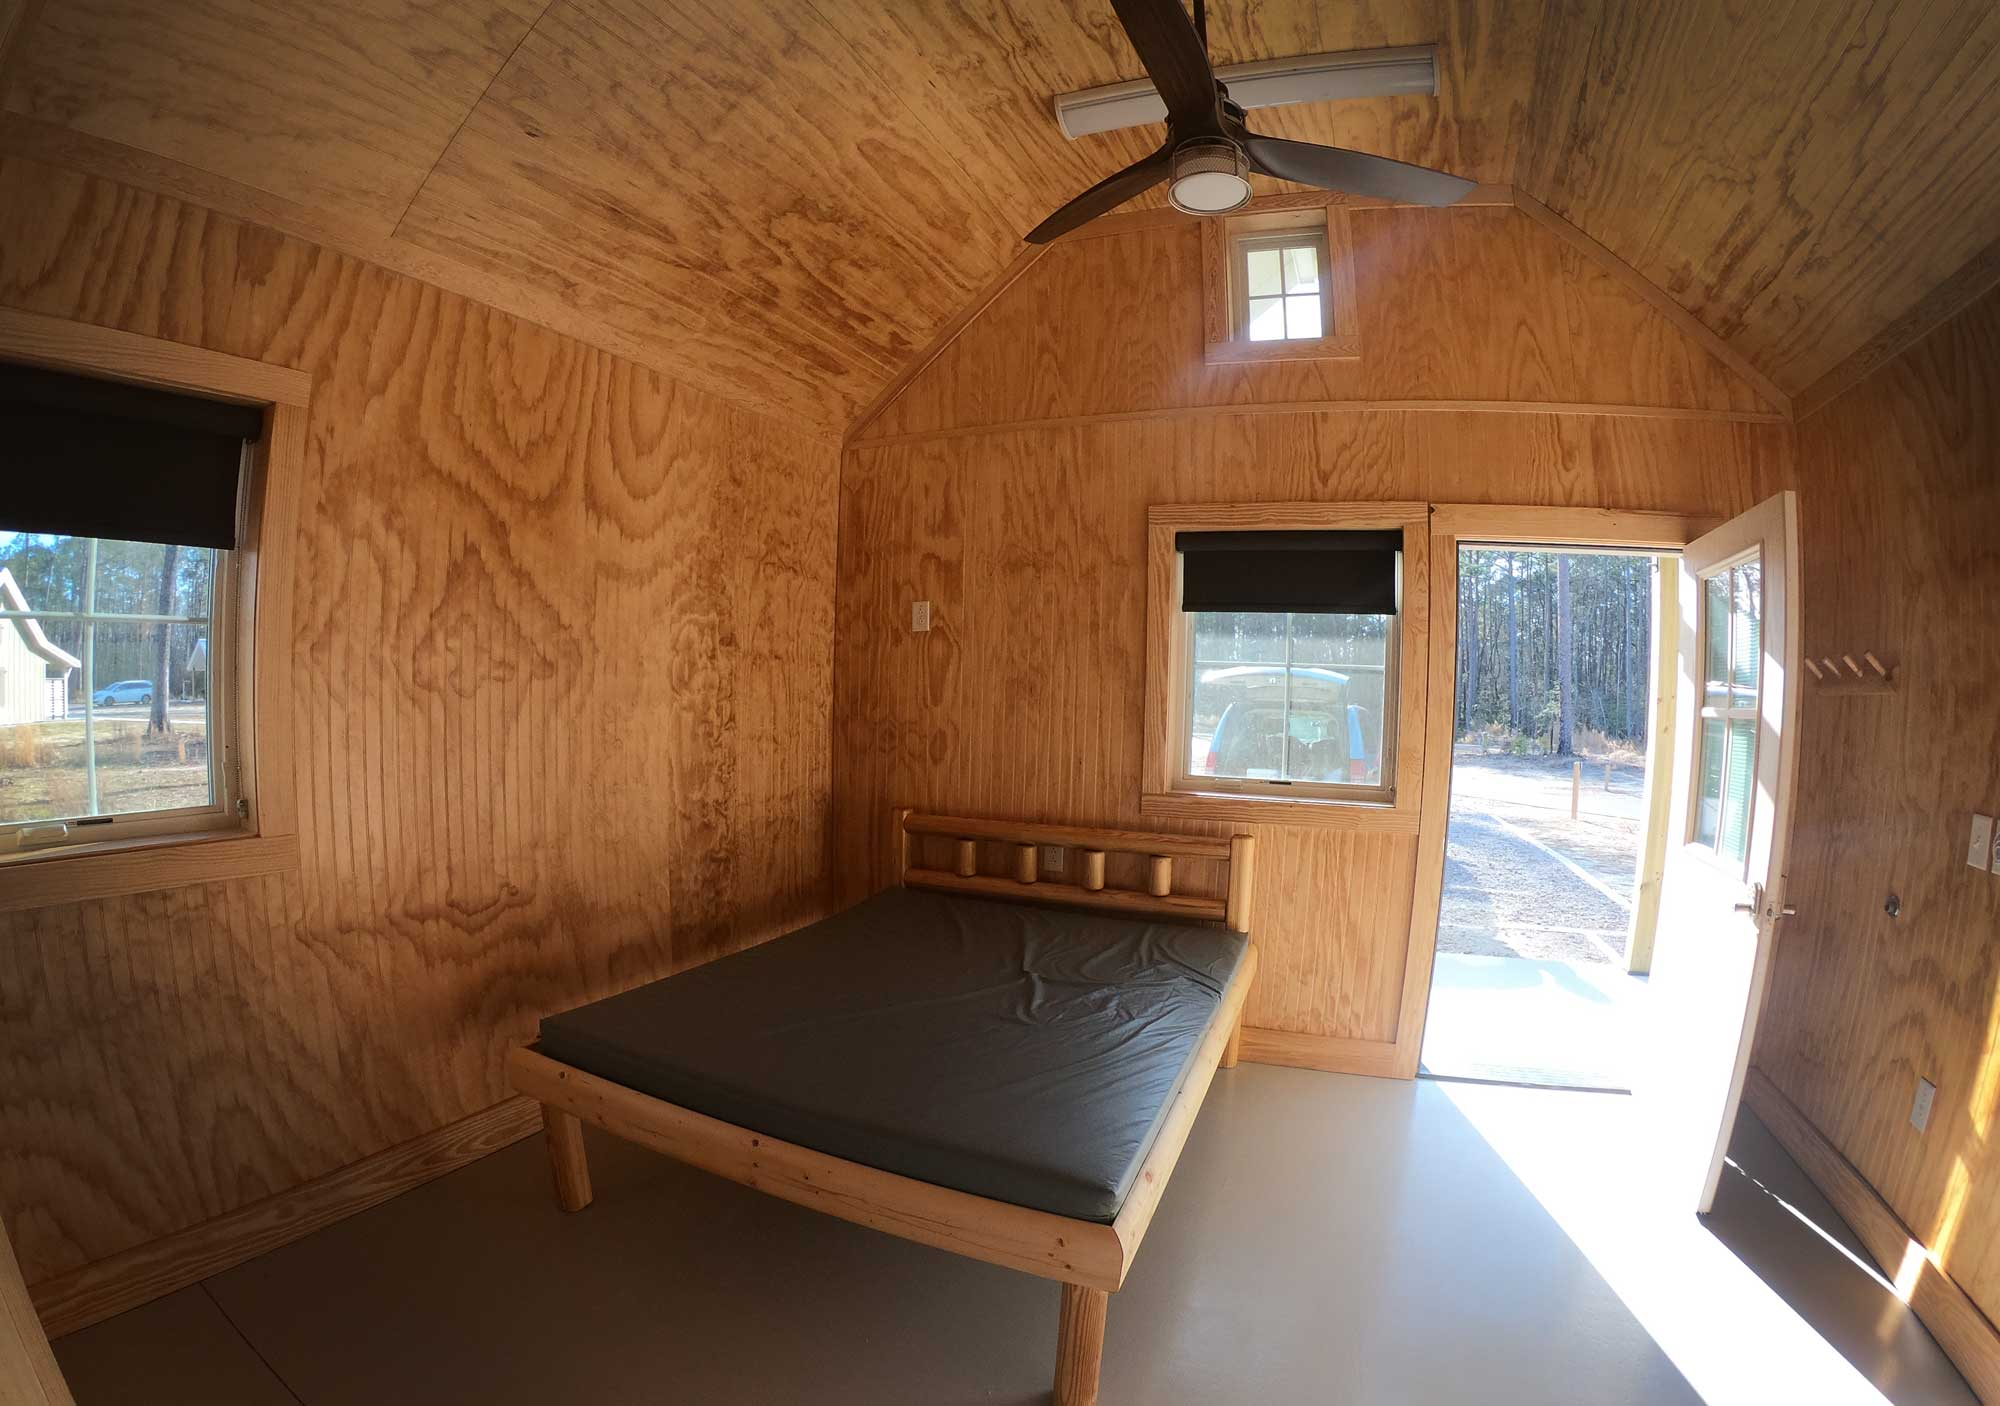 Interior of Goose Creek State Park cabin with queen bed and vaulted ceilings